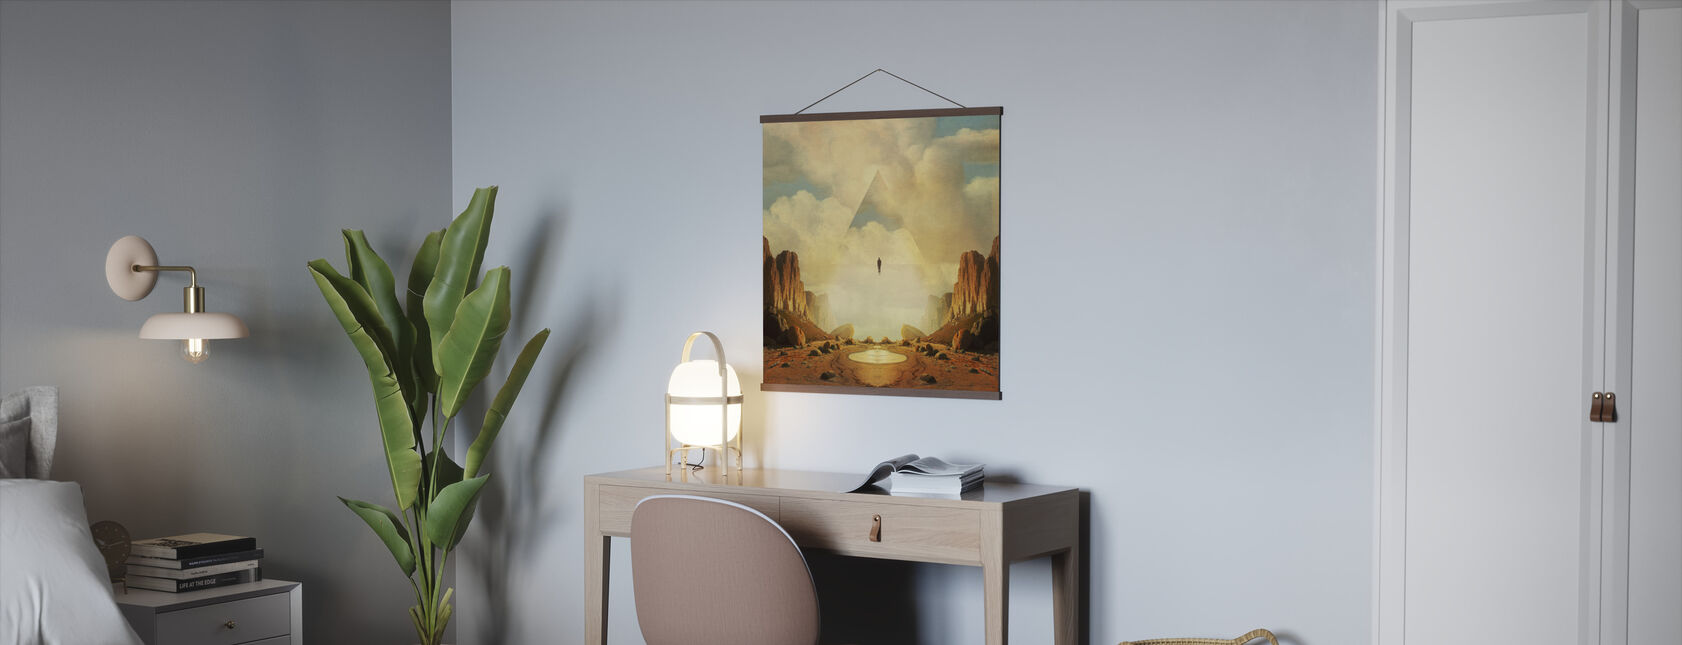 Epiphany - Poster - Office